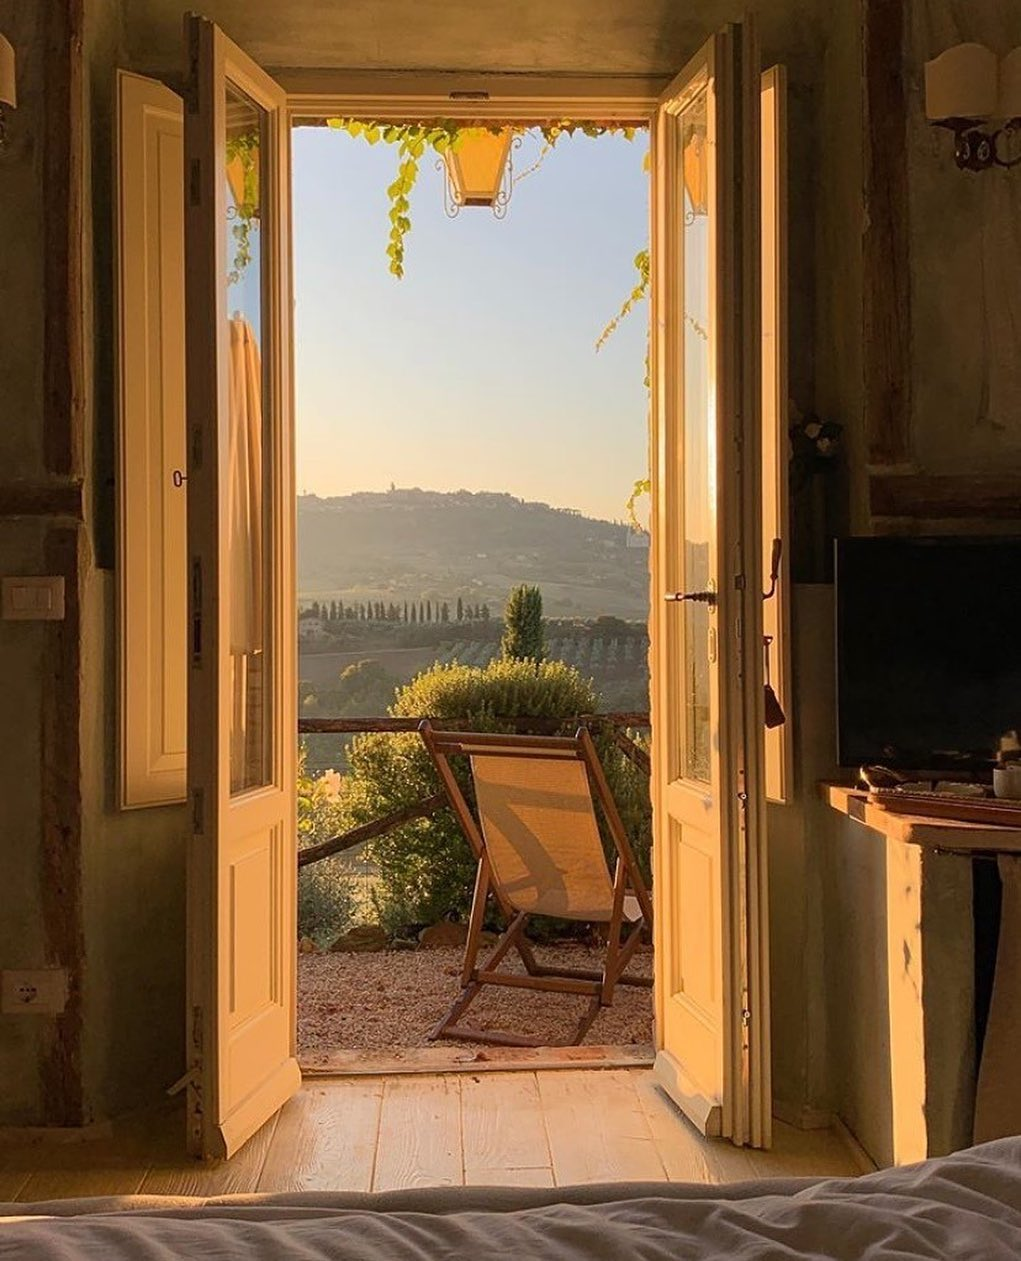 article, music, and call me by your name image